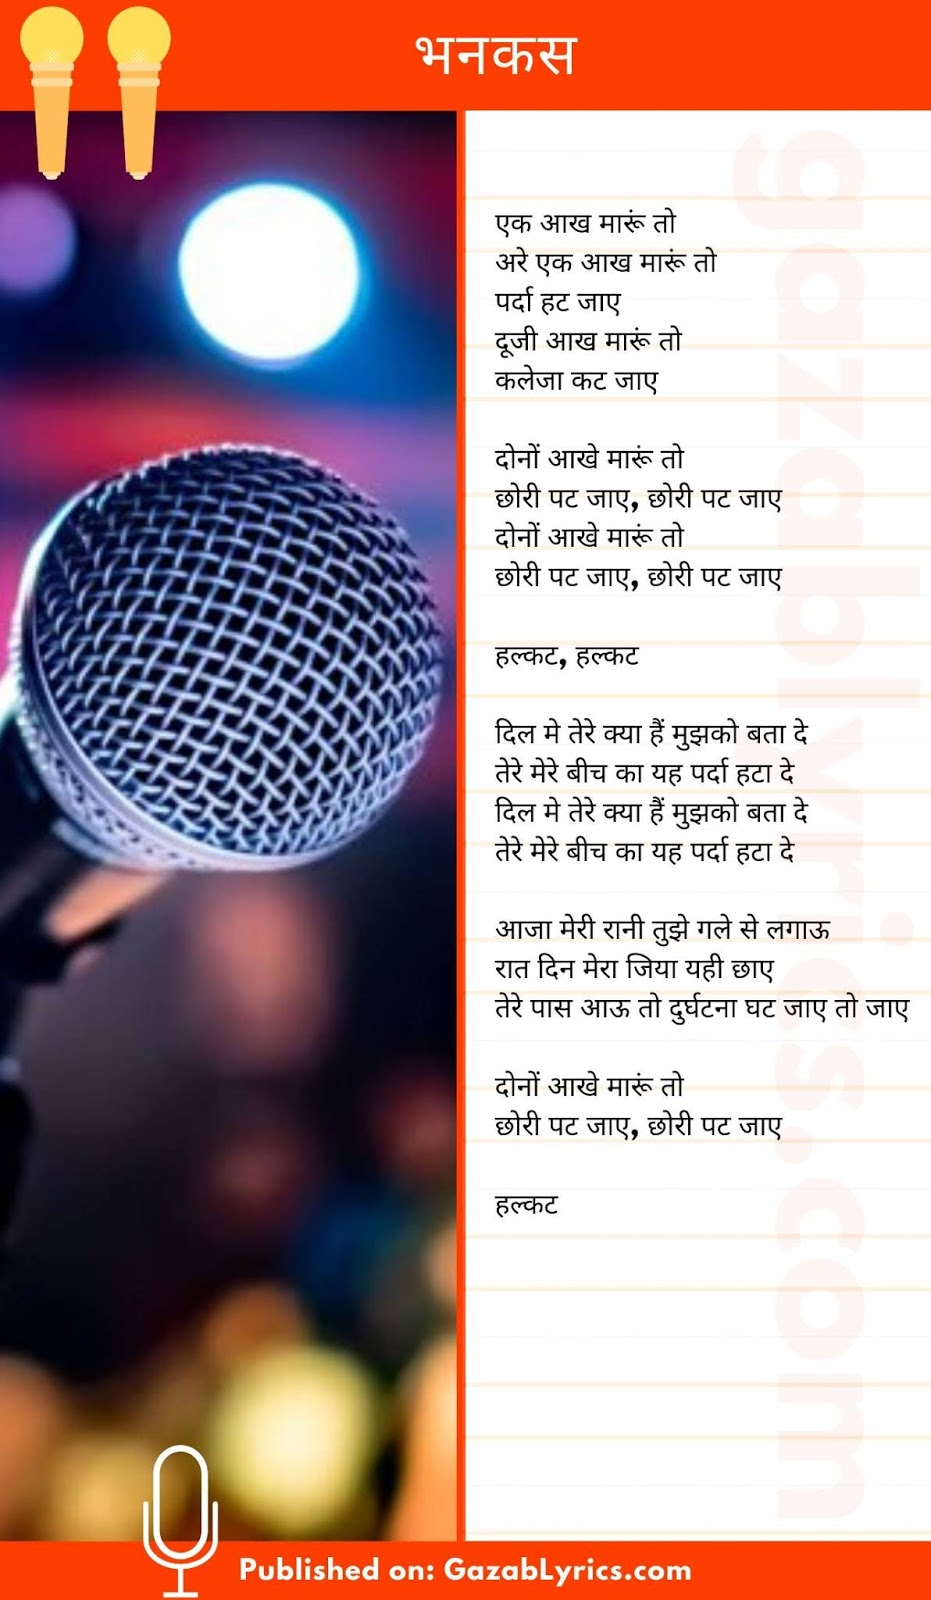 Bhankas song lyrics image